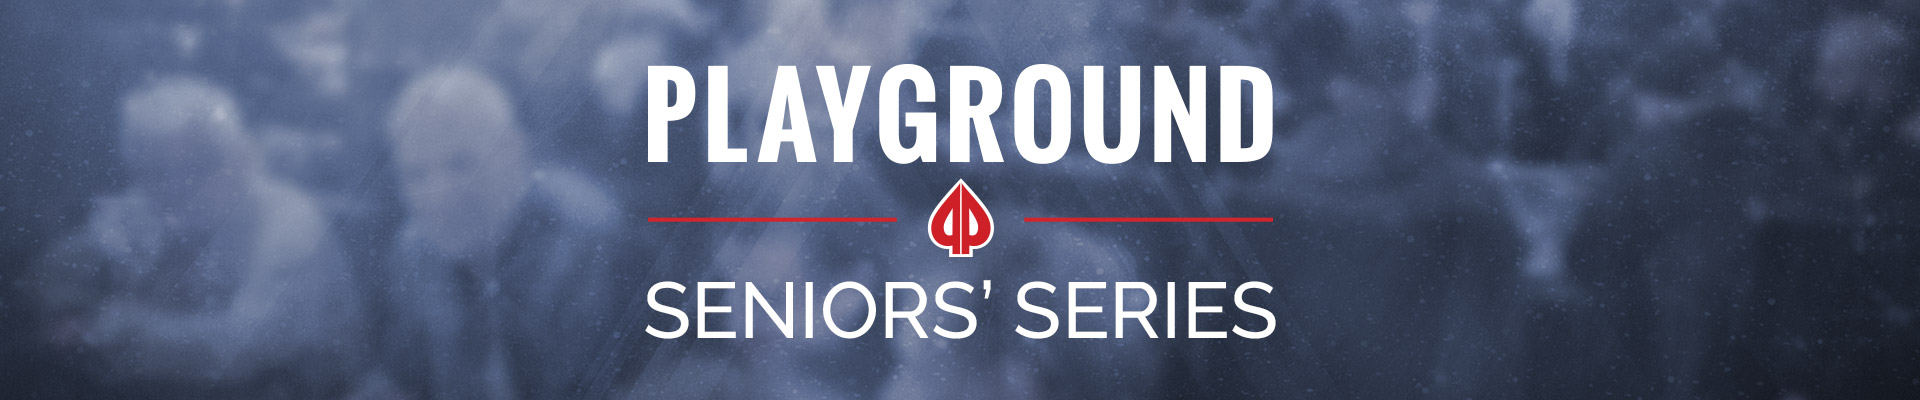 Playground Seniors Series 2020